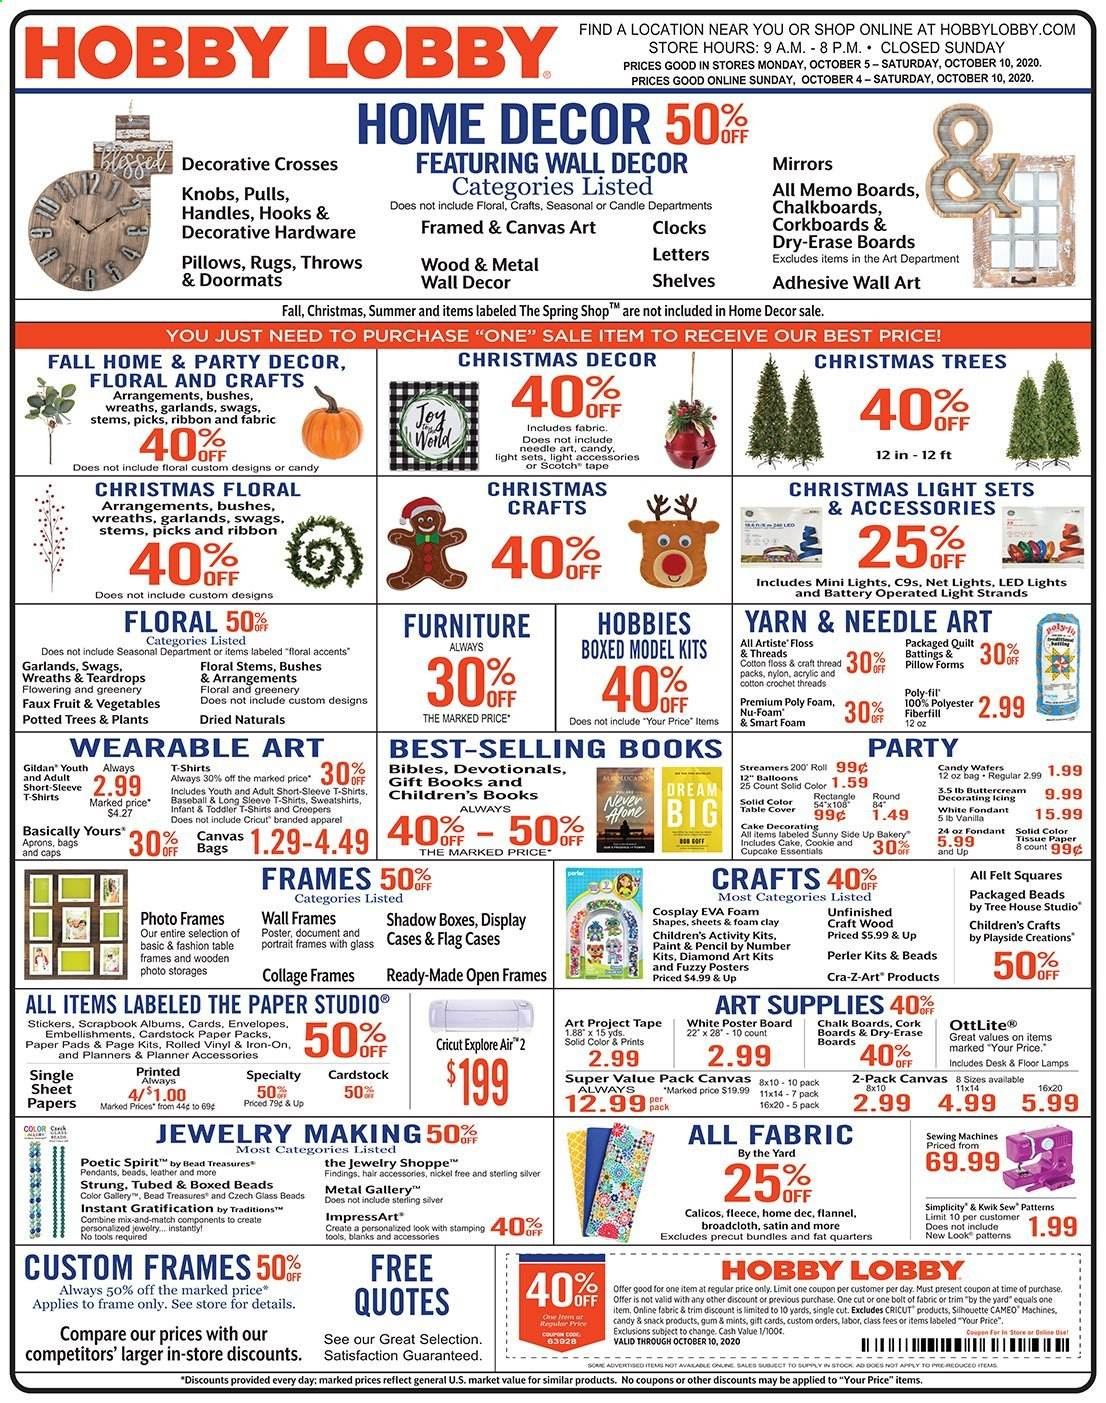 Hobby Lobby Flyer - 10.04.2020 - 10.10.2020 - Sales products - always, apparel, box, candle, cupcake, cupcakes, desk, flannel, foam, frame, furniture, knob, lamp, led light, light set, rug, sheet, shelf, shelves, shirt, solid, sticker, sweatshirt, table, tape, throw, tree, wafers, wall decor, handles, hook, christmas tree, christmas decor, iron, pillow, quilt, pendant, pads, christmas lights, cake, candy, vegetables, snack, jewelry, flag, gum, envelope, board, vinyl, fruit, thread, sewing, ribbon, stickers, envelopes, vegetable, paint, tools, canvas, craft, led, spring, throws. Page 1.